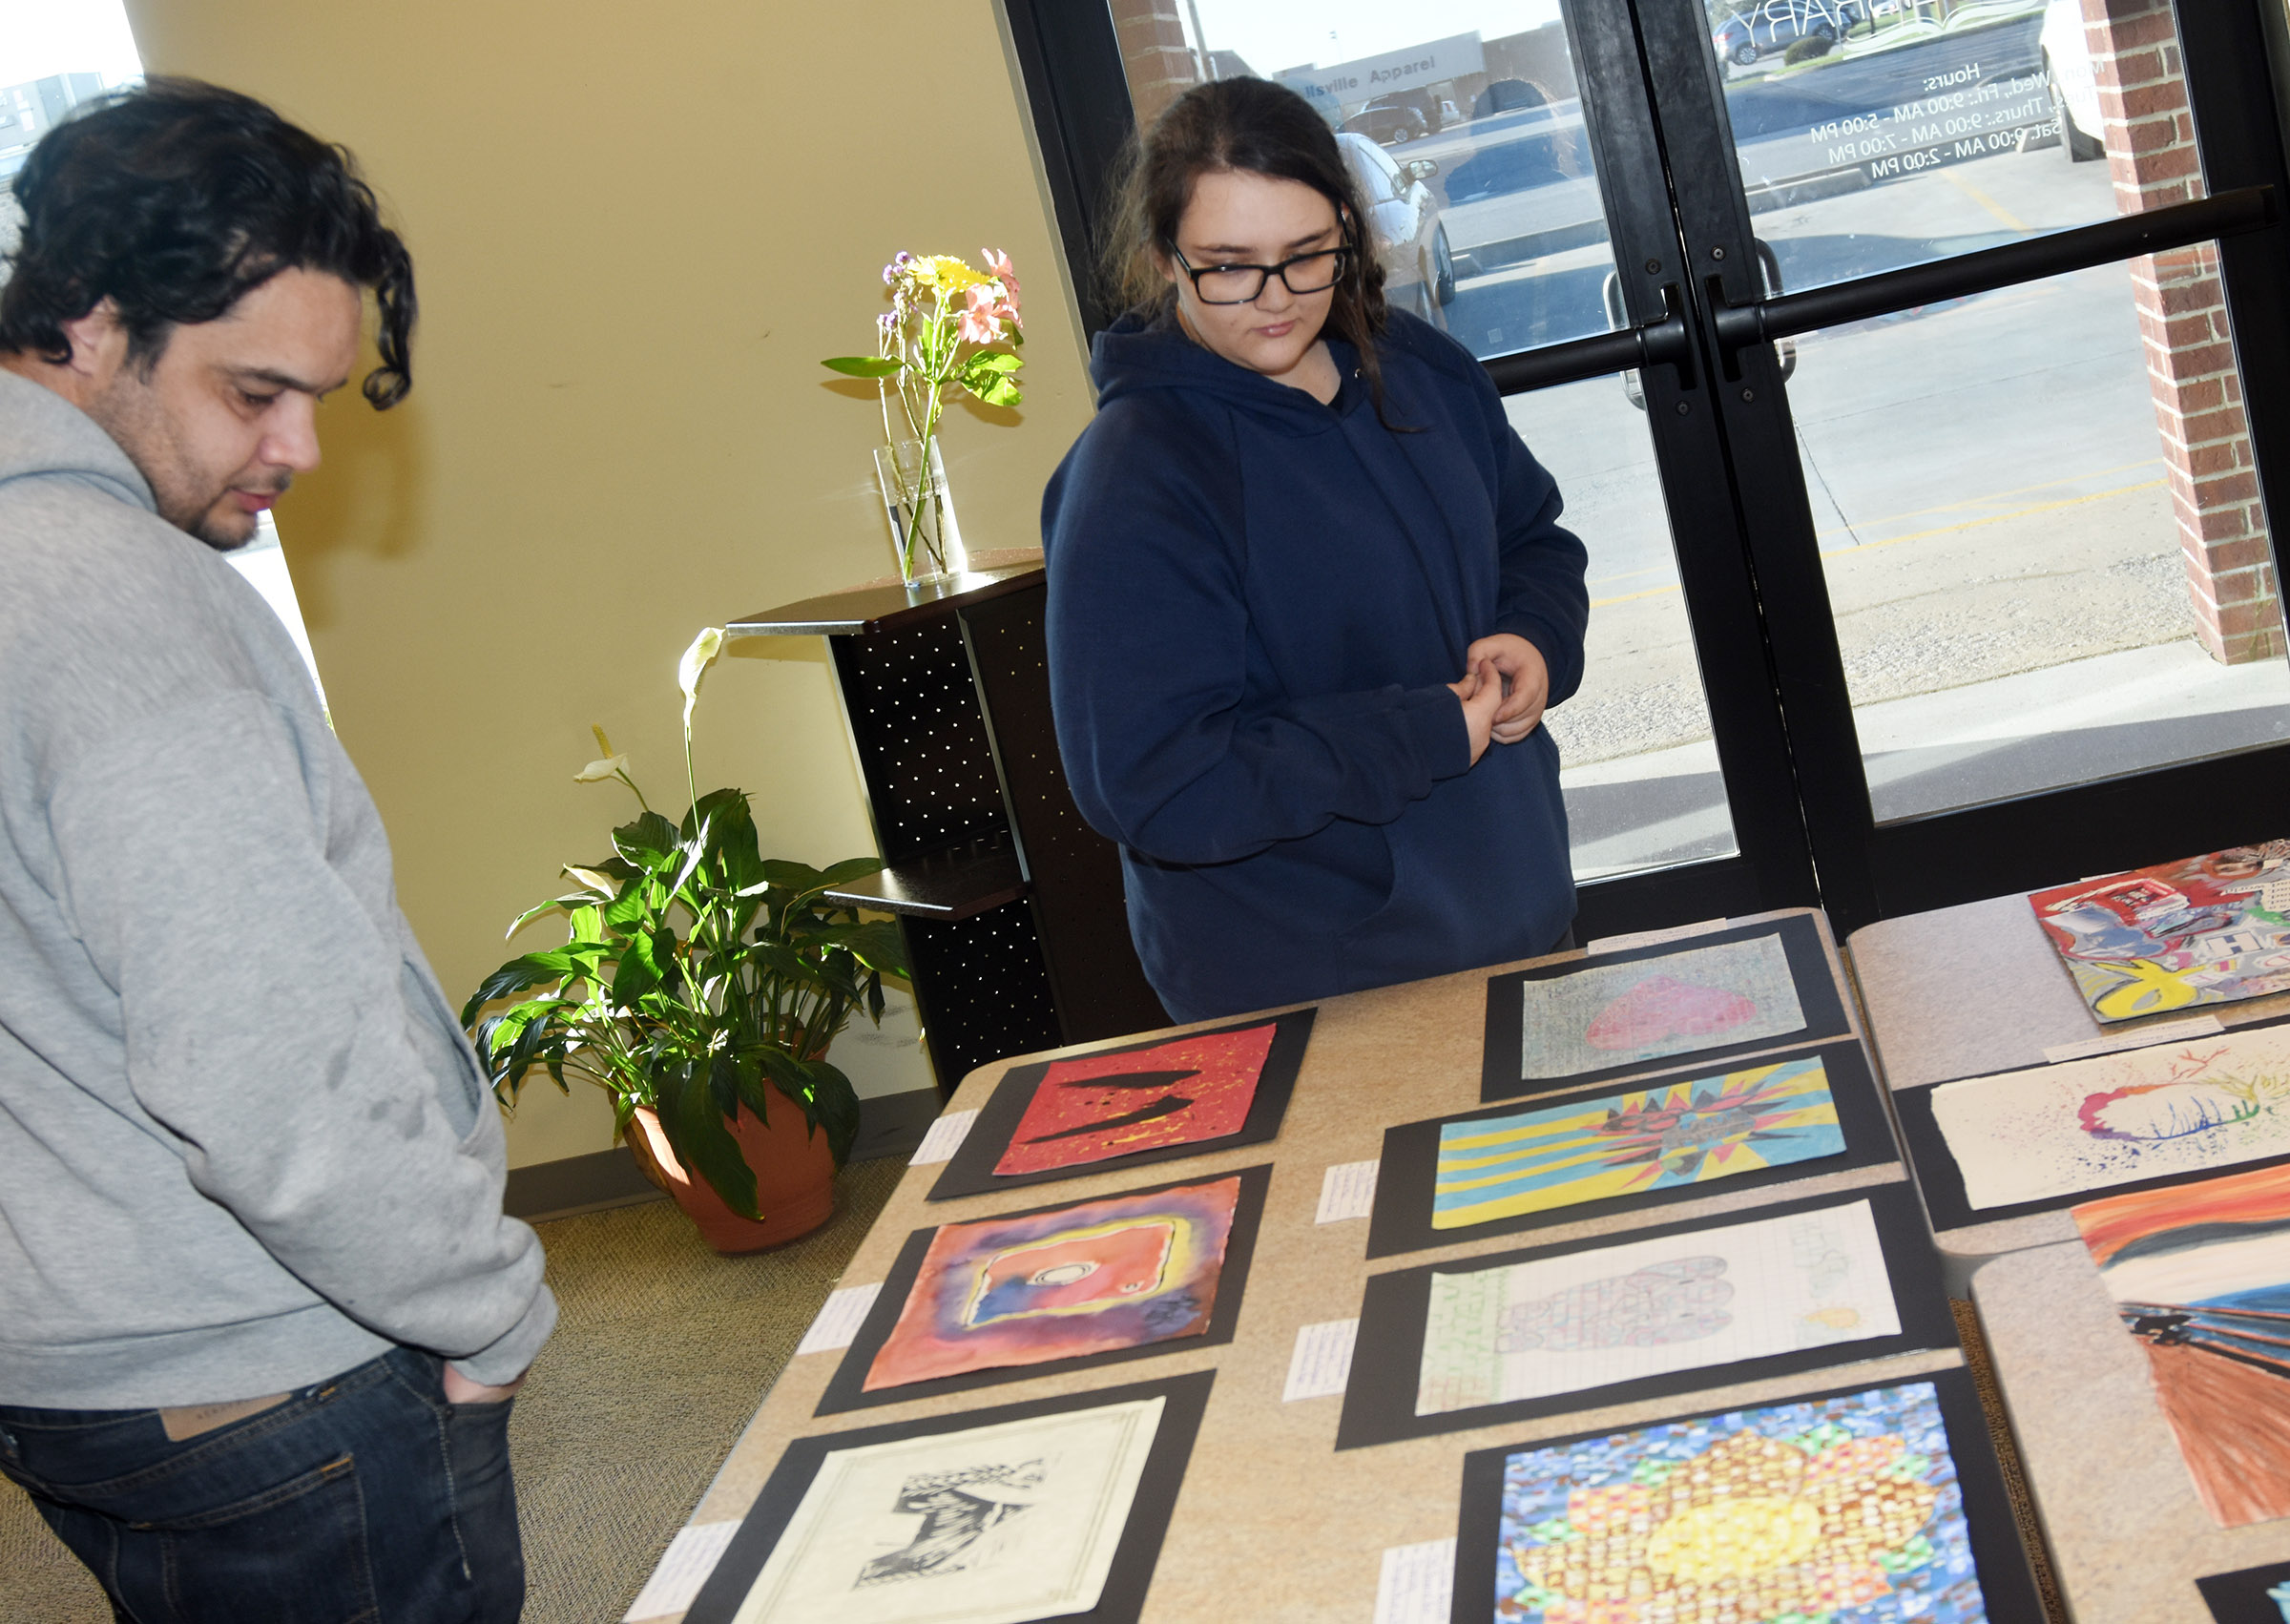 CHS freshman Haley Lopez looks at the artwork on display.